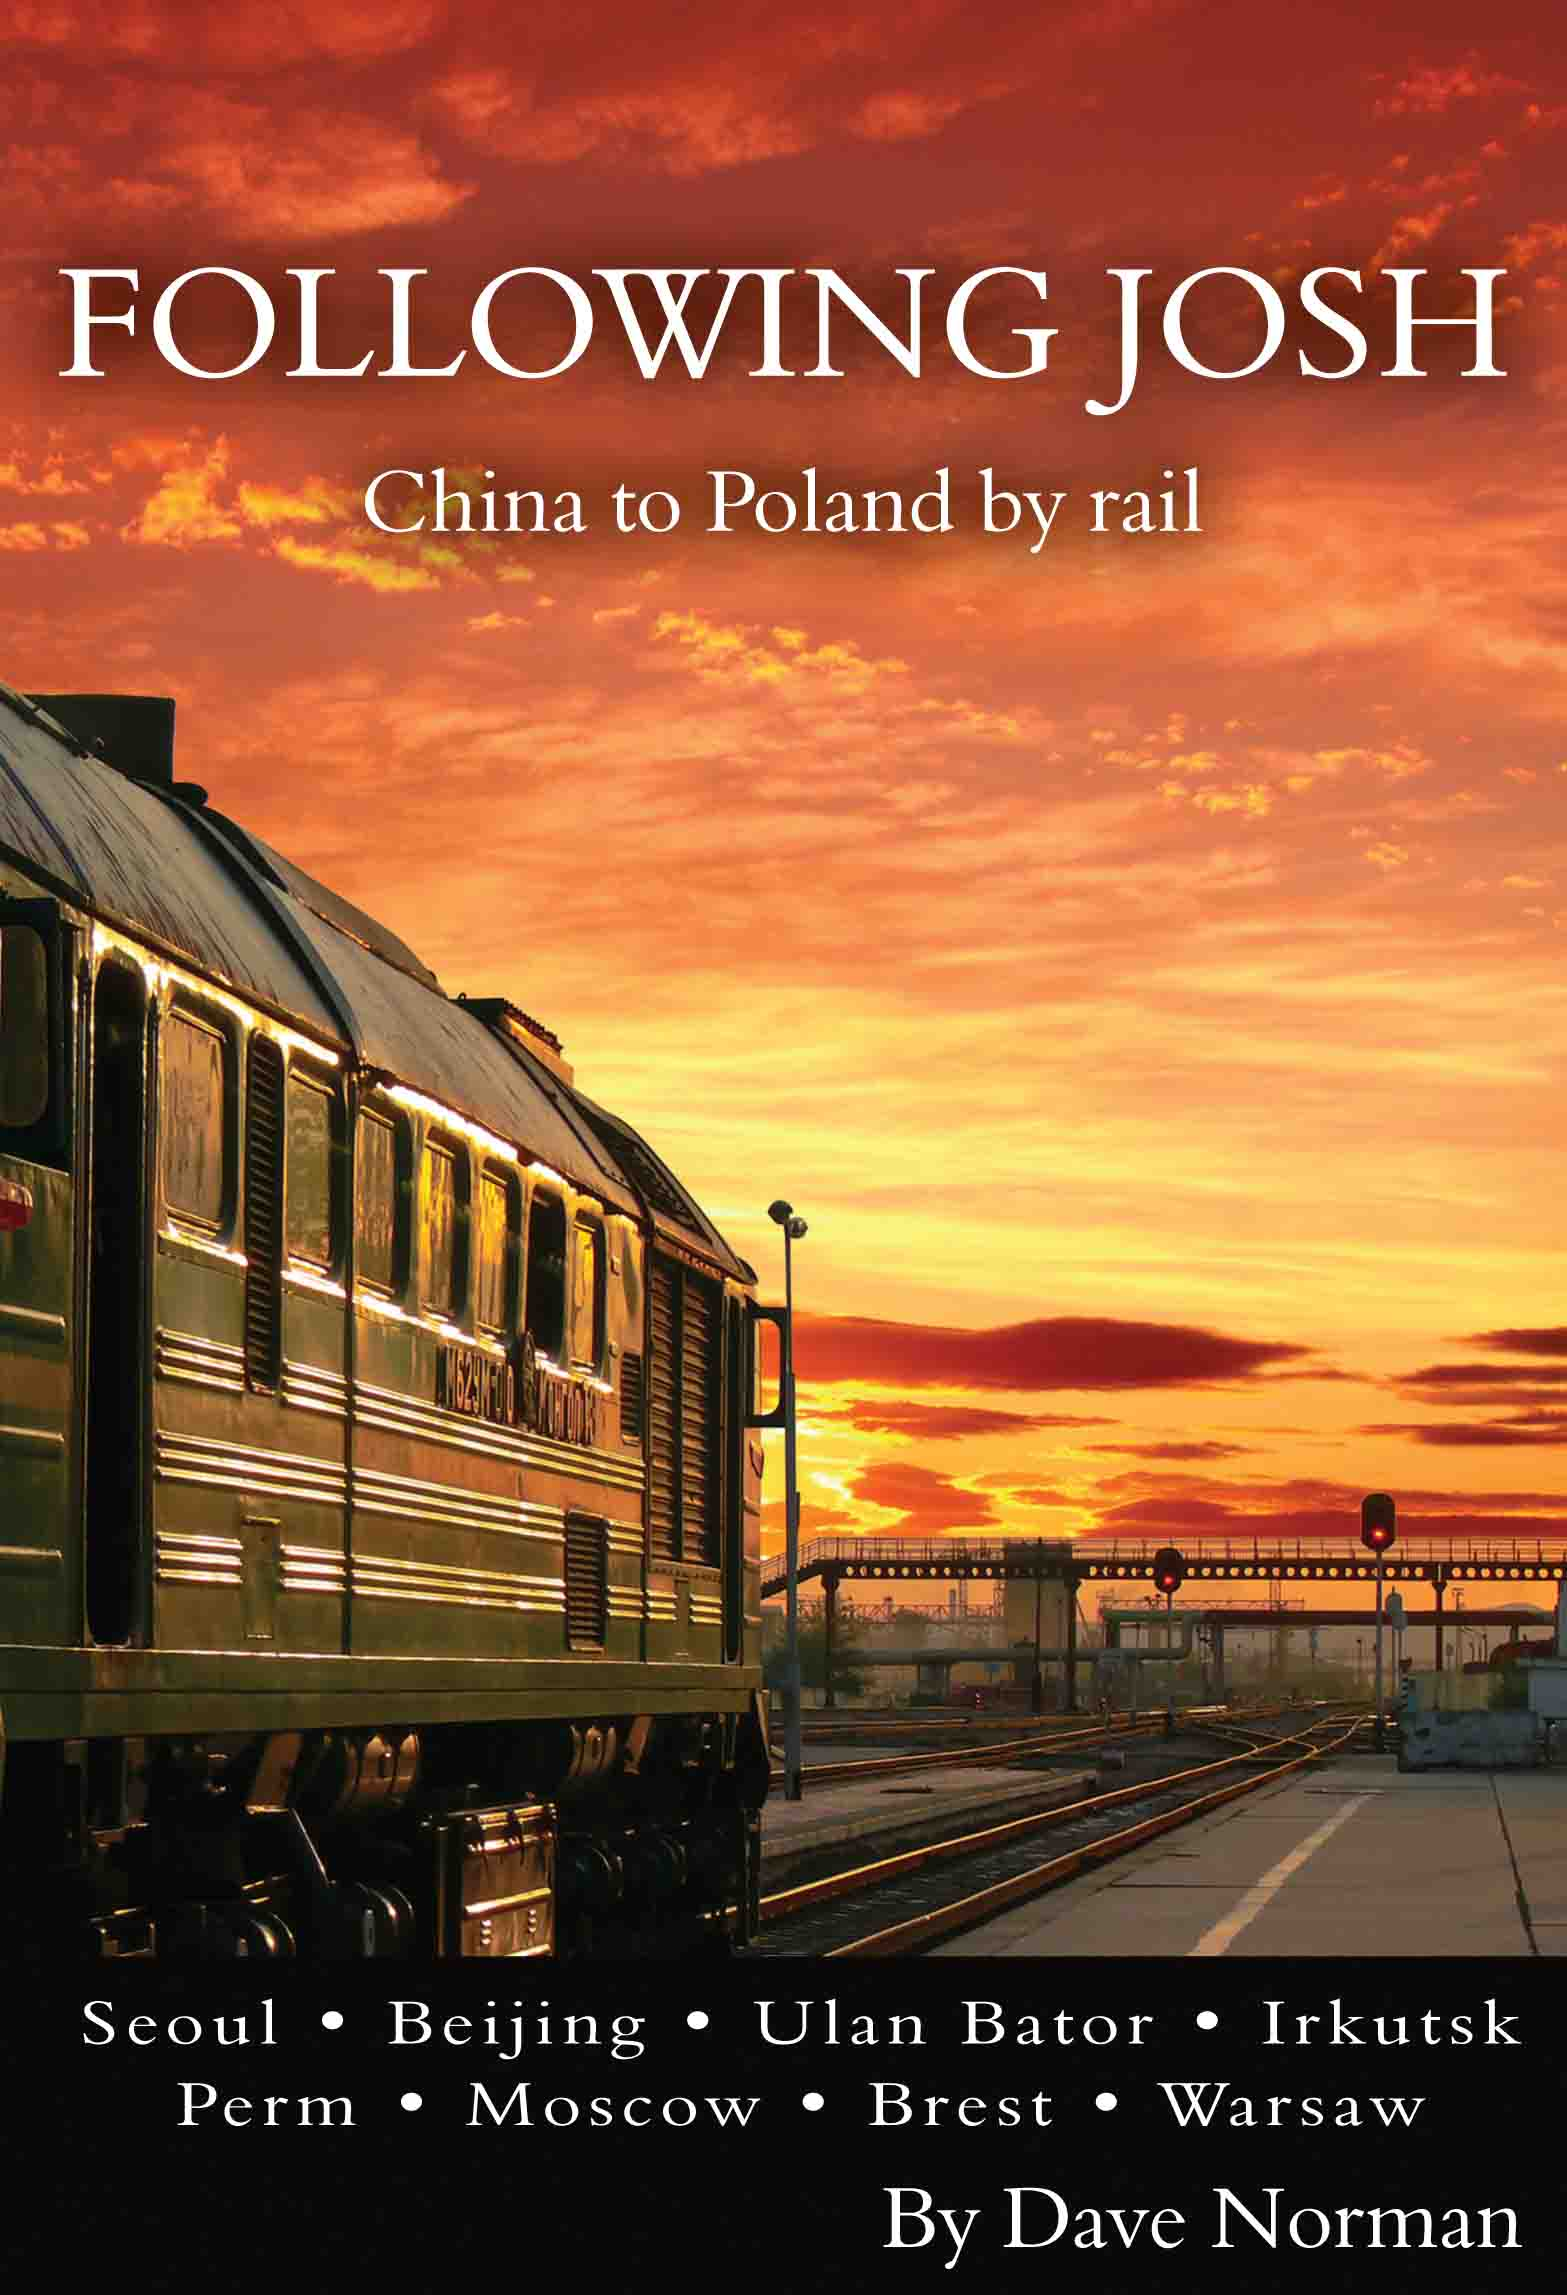 Ride the Trans Siberian Railroad!